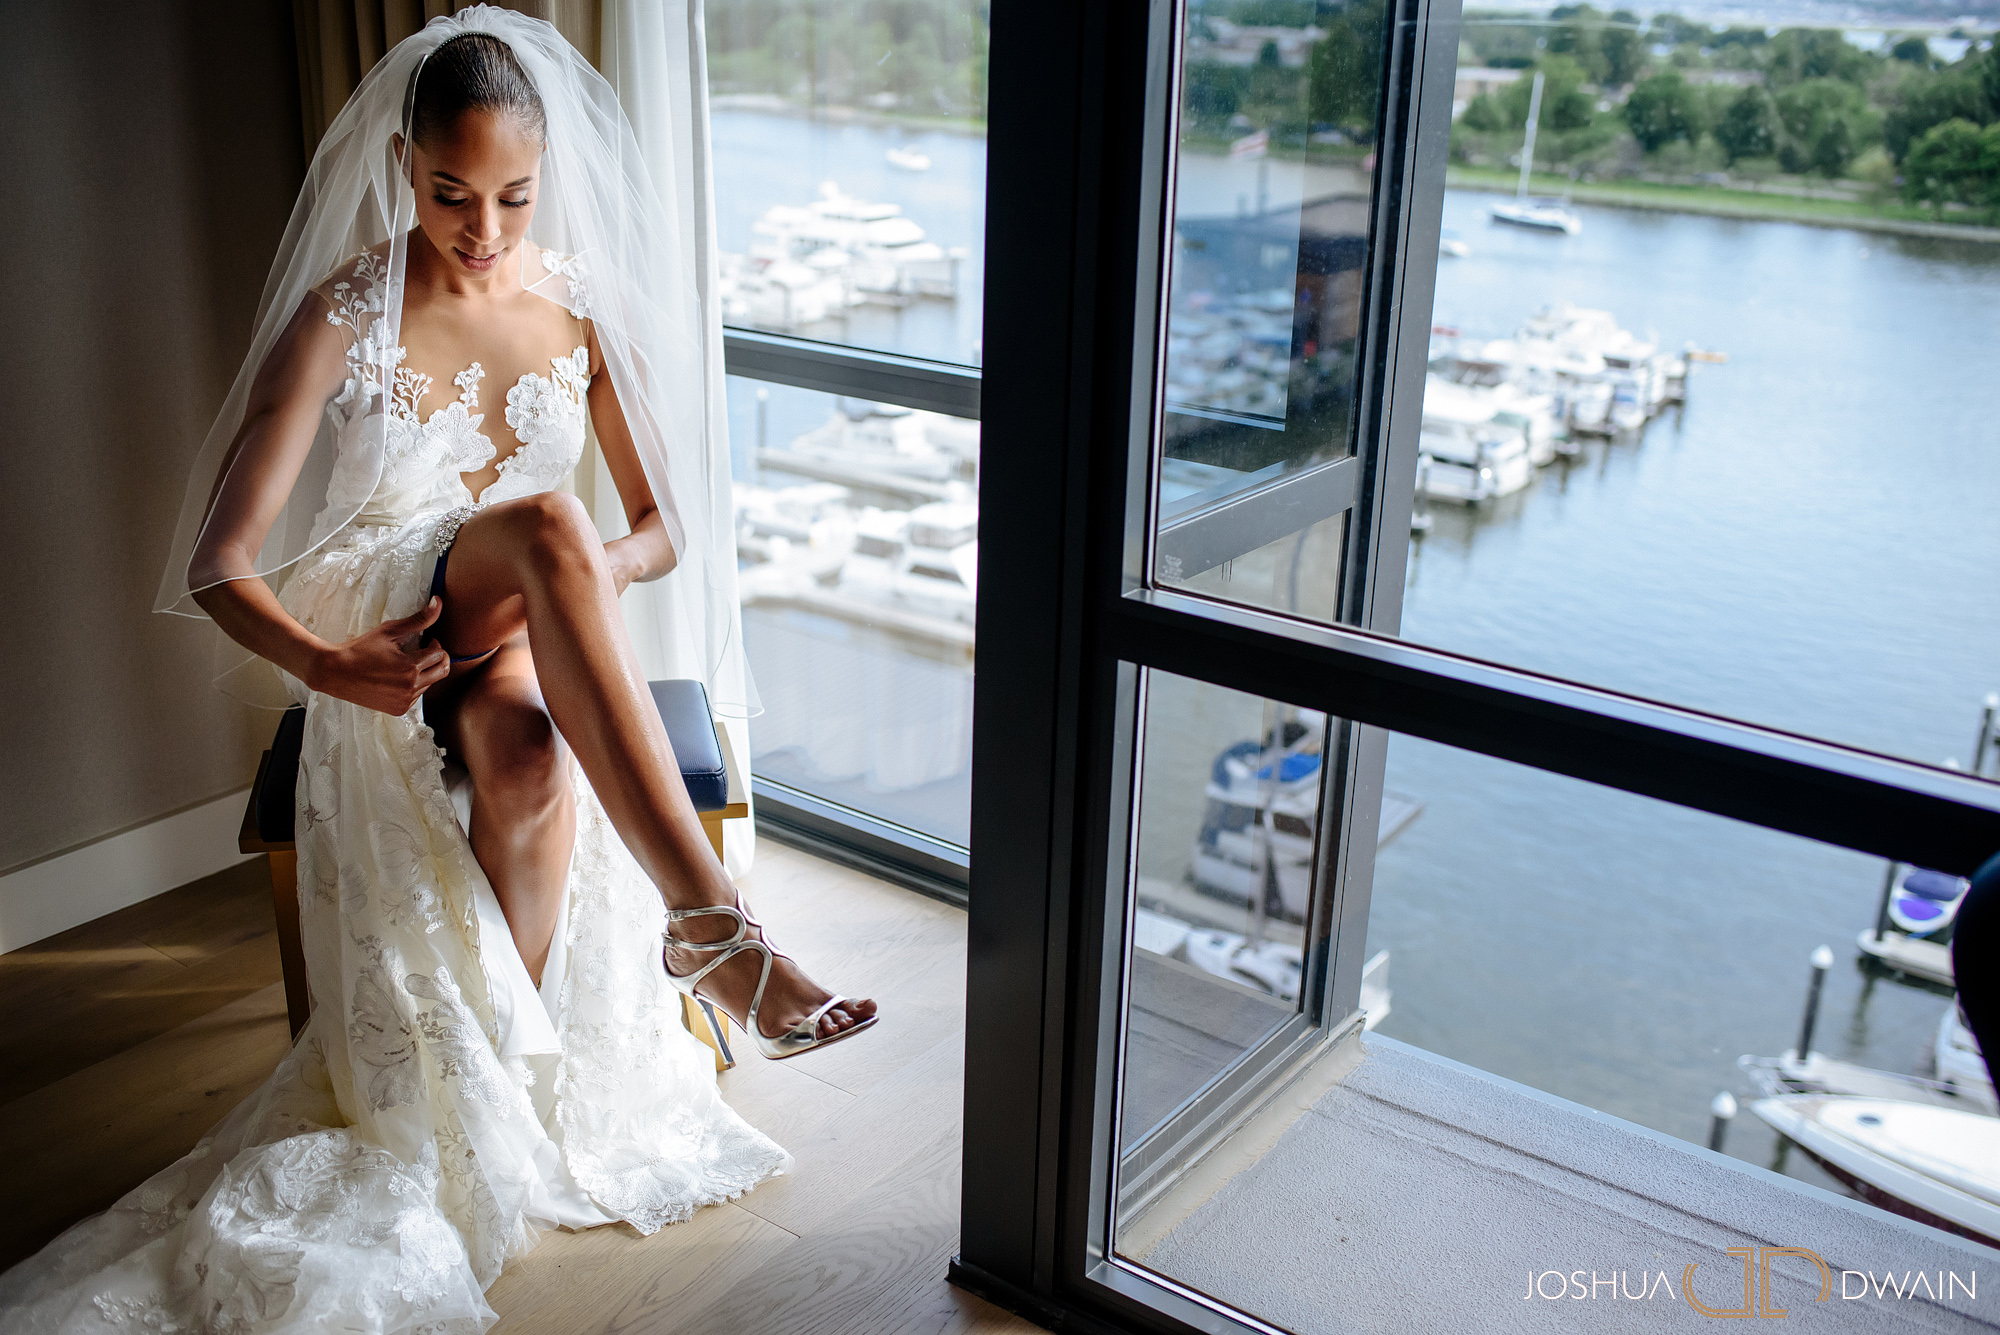 leshia-adam-012-dc-wharf-wedding-photos-joshua-dwain-photographer